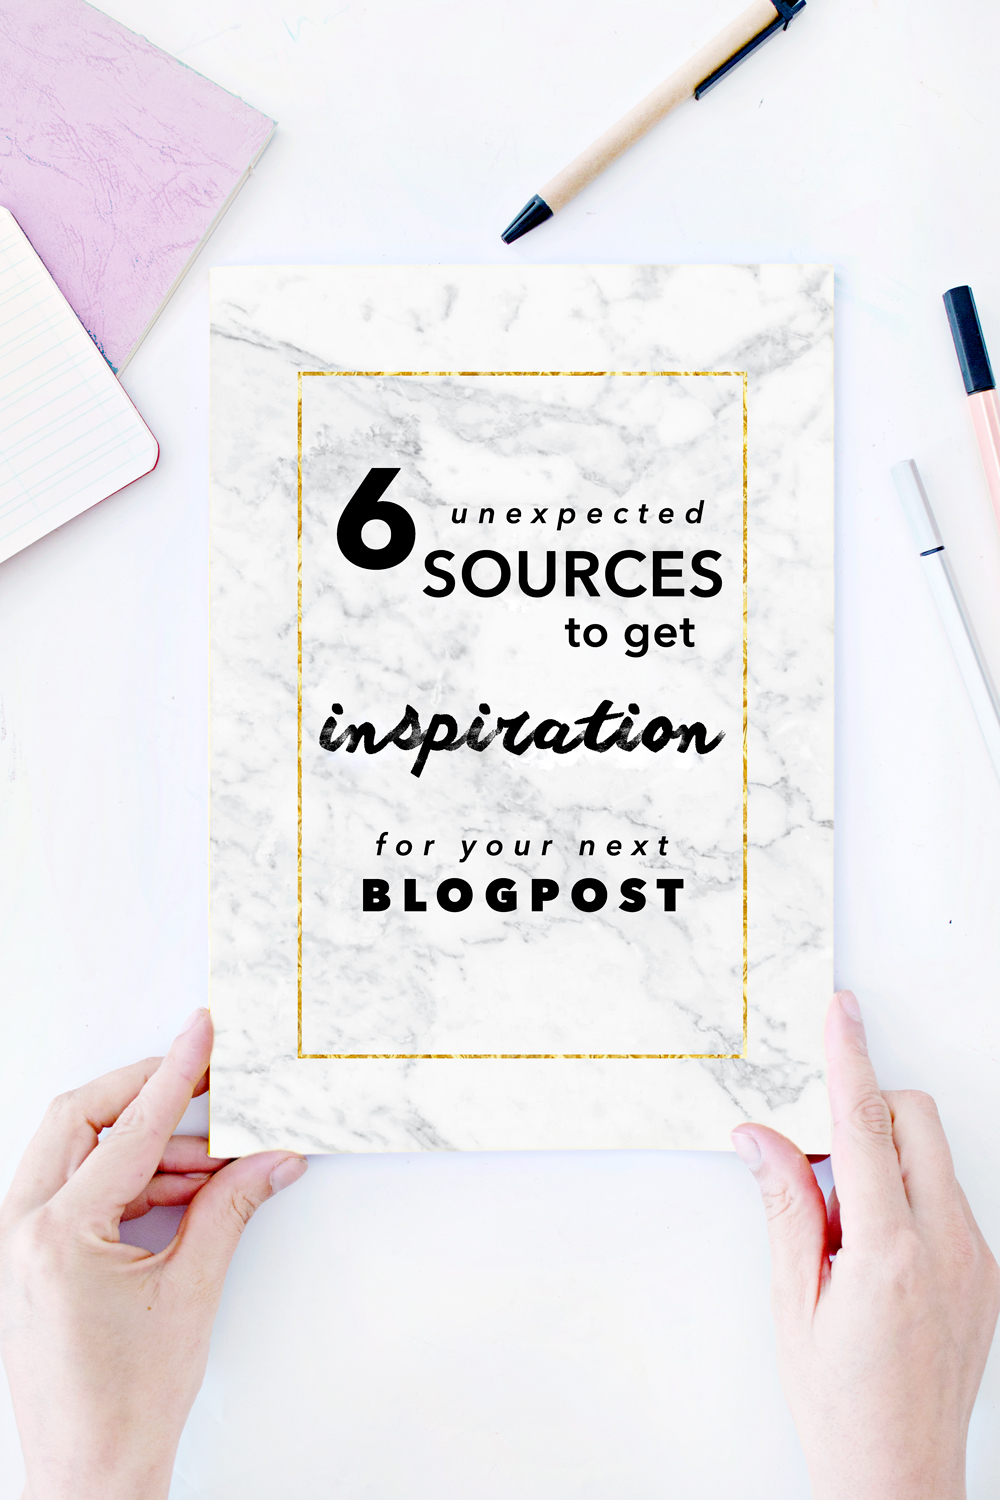 BLOGGING | 6 UNEXPECTED SOURCES TO GET INSPIRATION FOR YOUR NEXT BLOGPOST